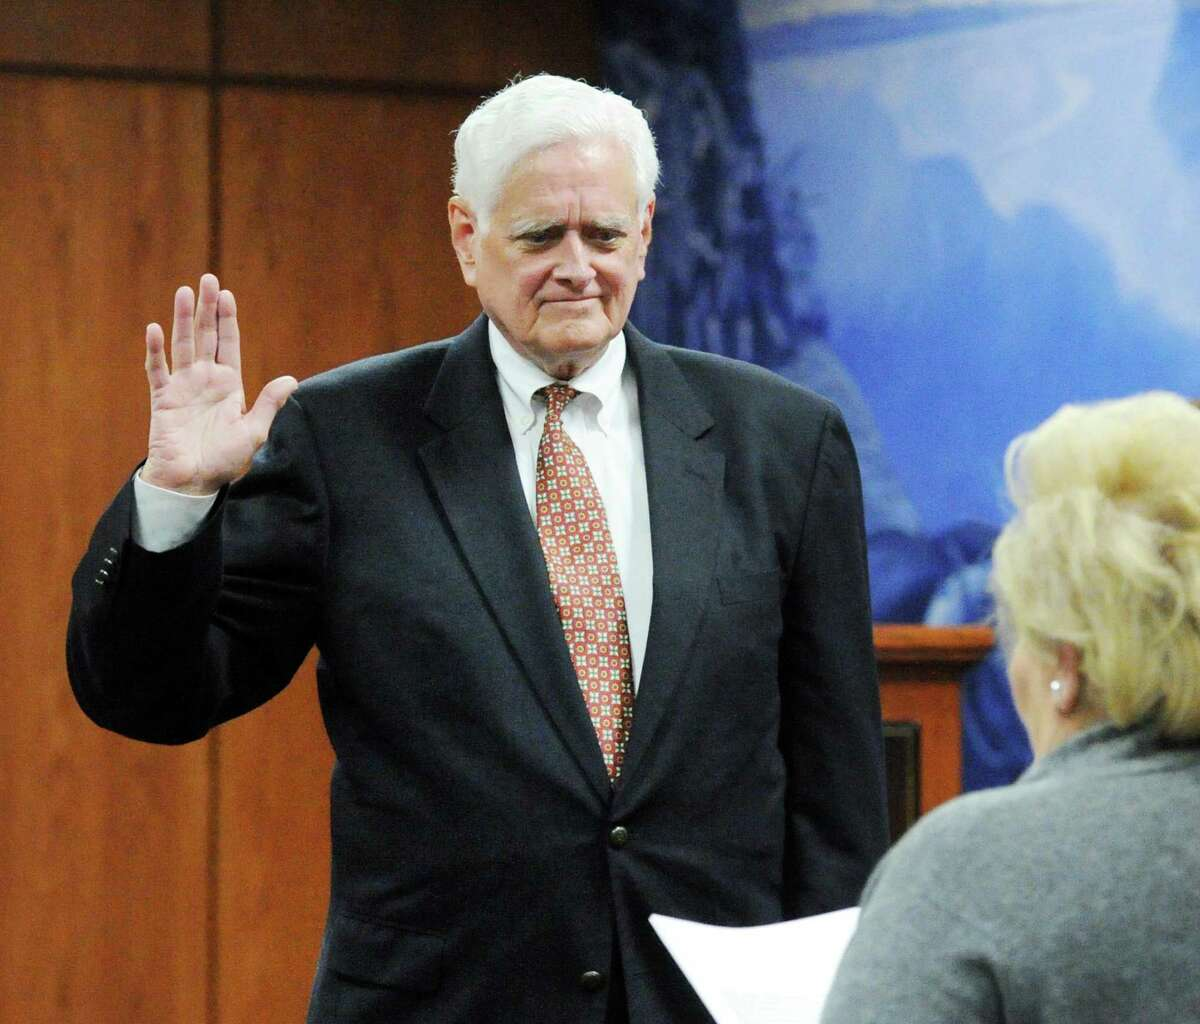 John Toner, seen here being sworn in for his second term in 2017, will not seek re-election to the town's Board of Selectmen.